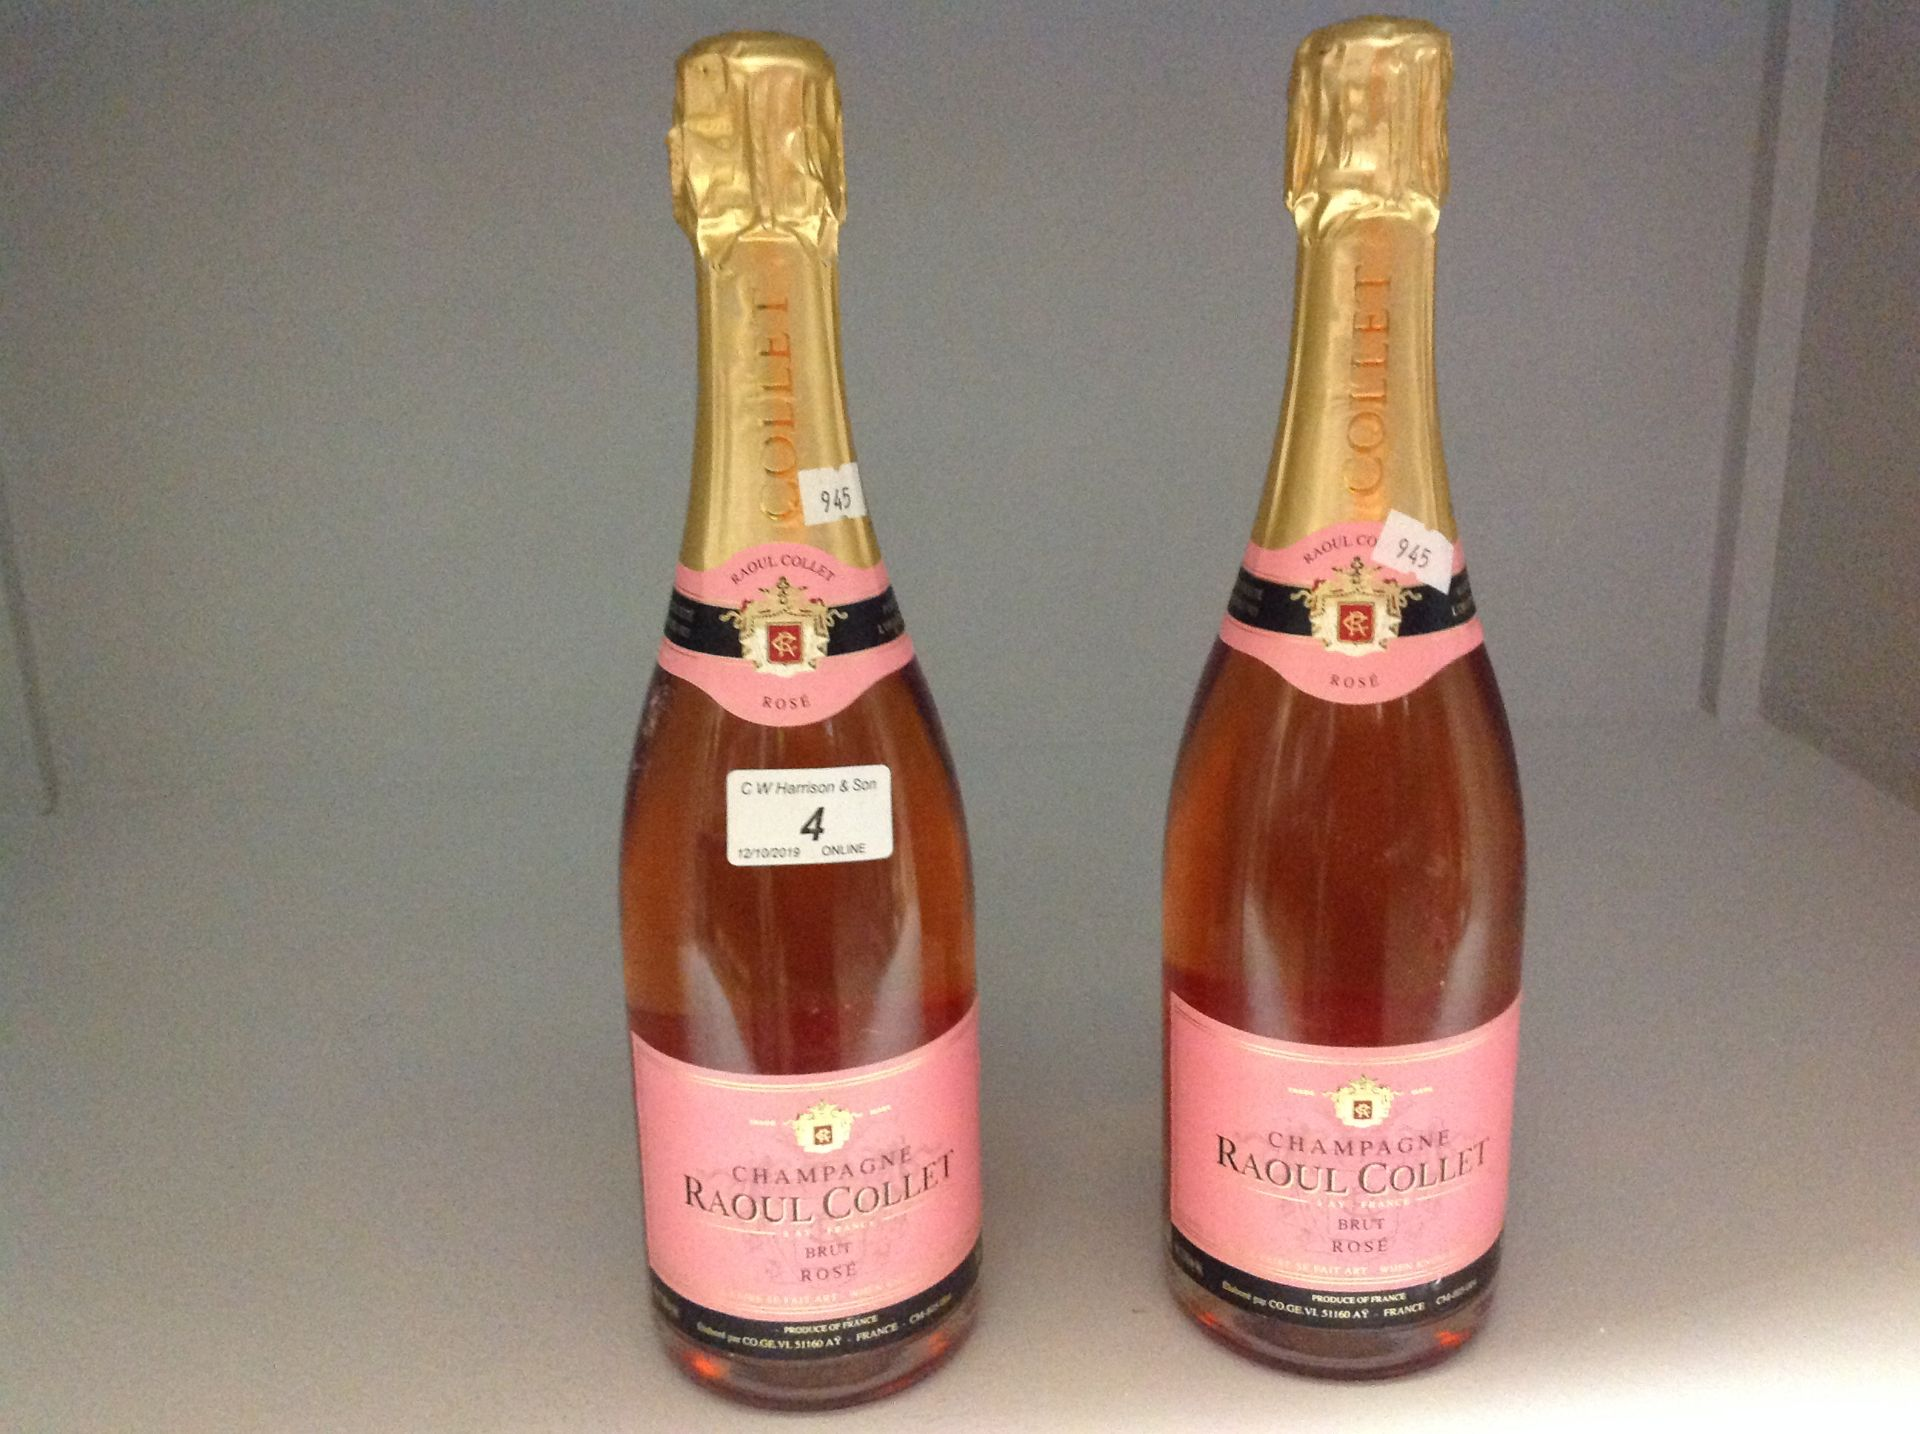 Lot 4 - 2 x 750ml bottles Raoul Collet Brut Rose